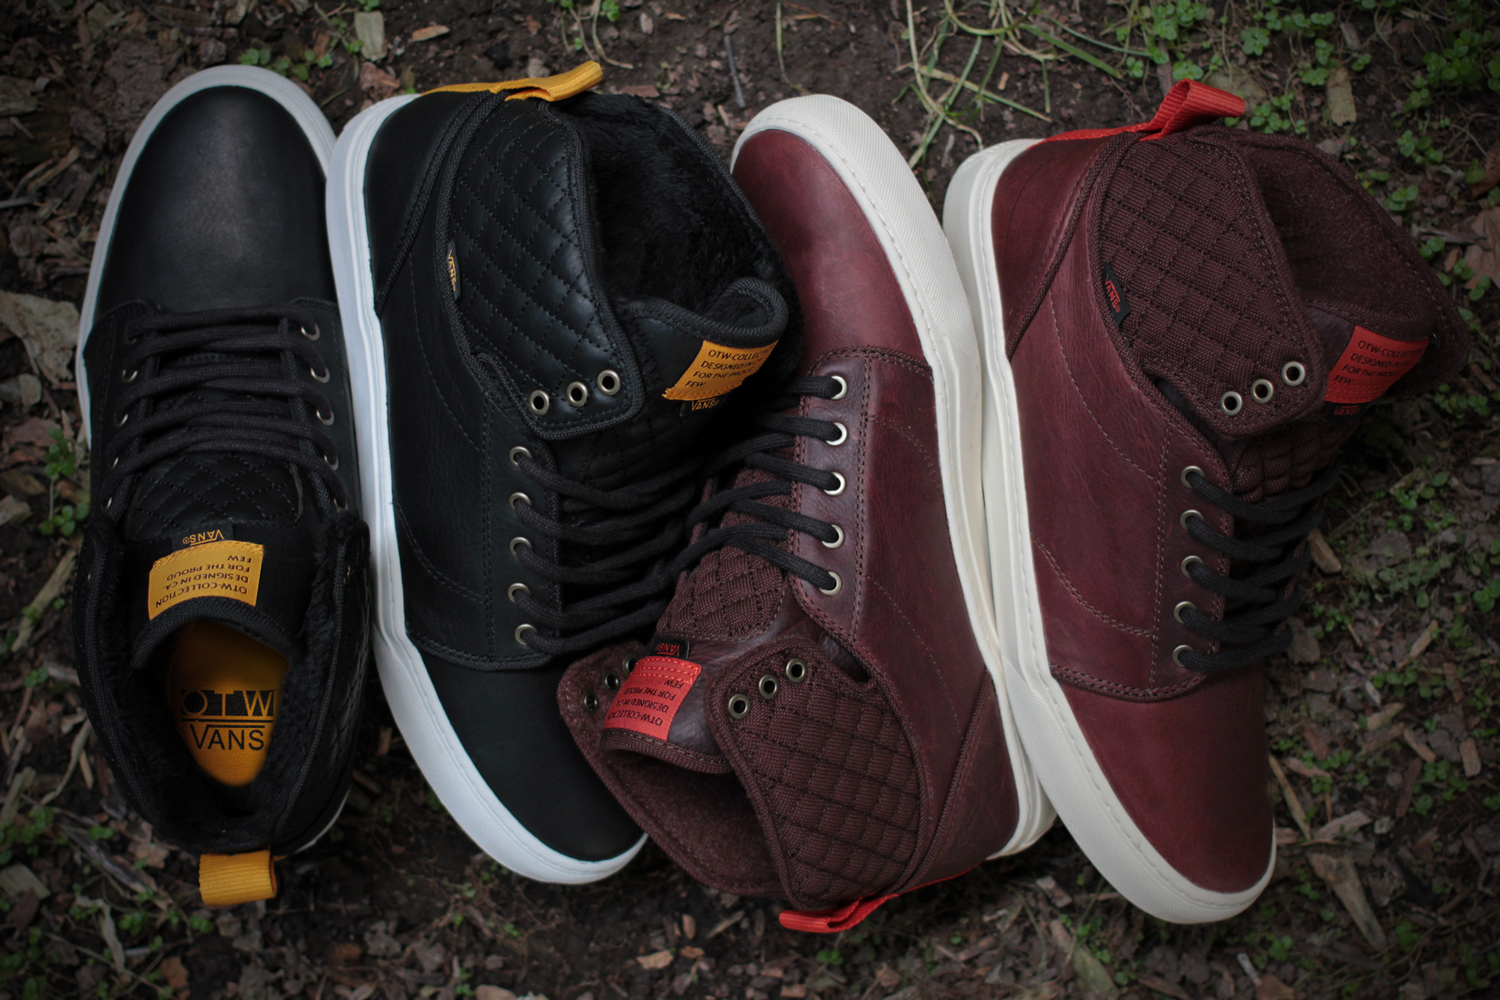 Vans OTW Collection Alomar AW Militia Pack Holiday 2013